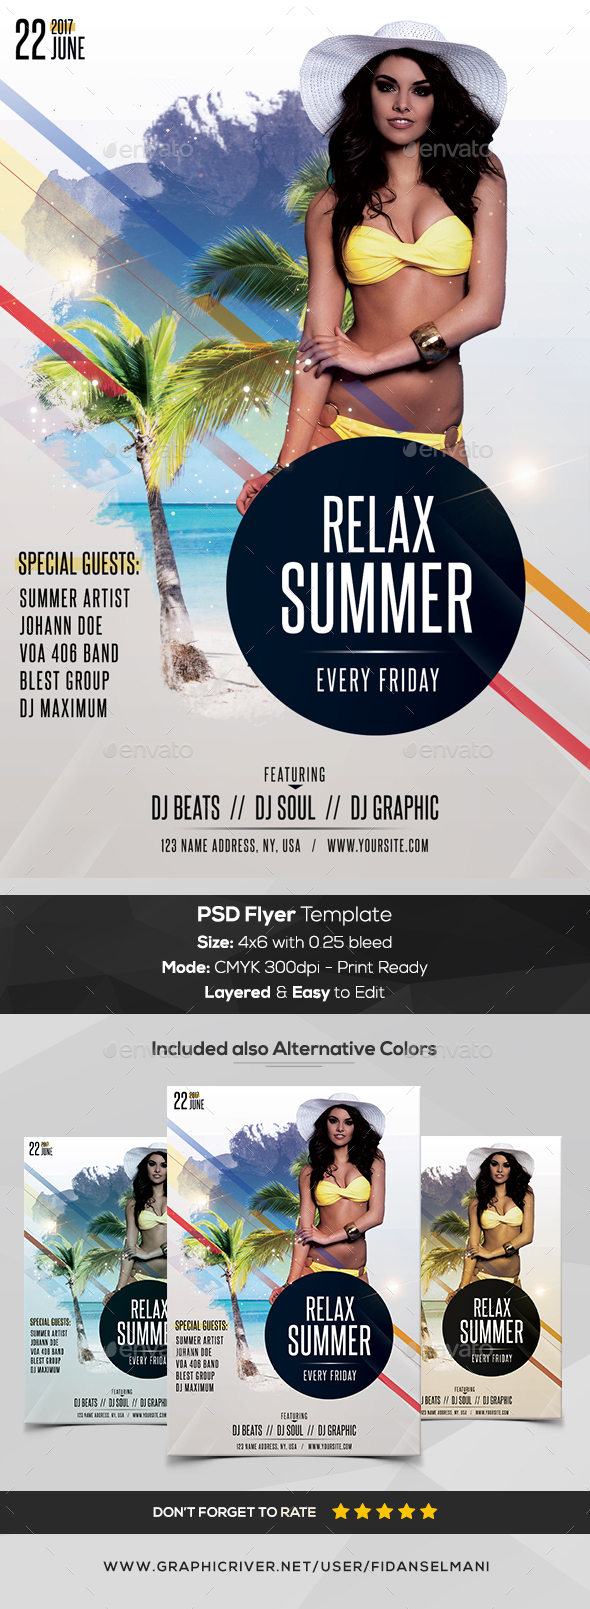 Relax Summer - PSD Flyer Template - Flyers Print Templates